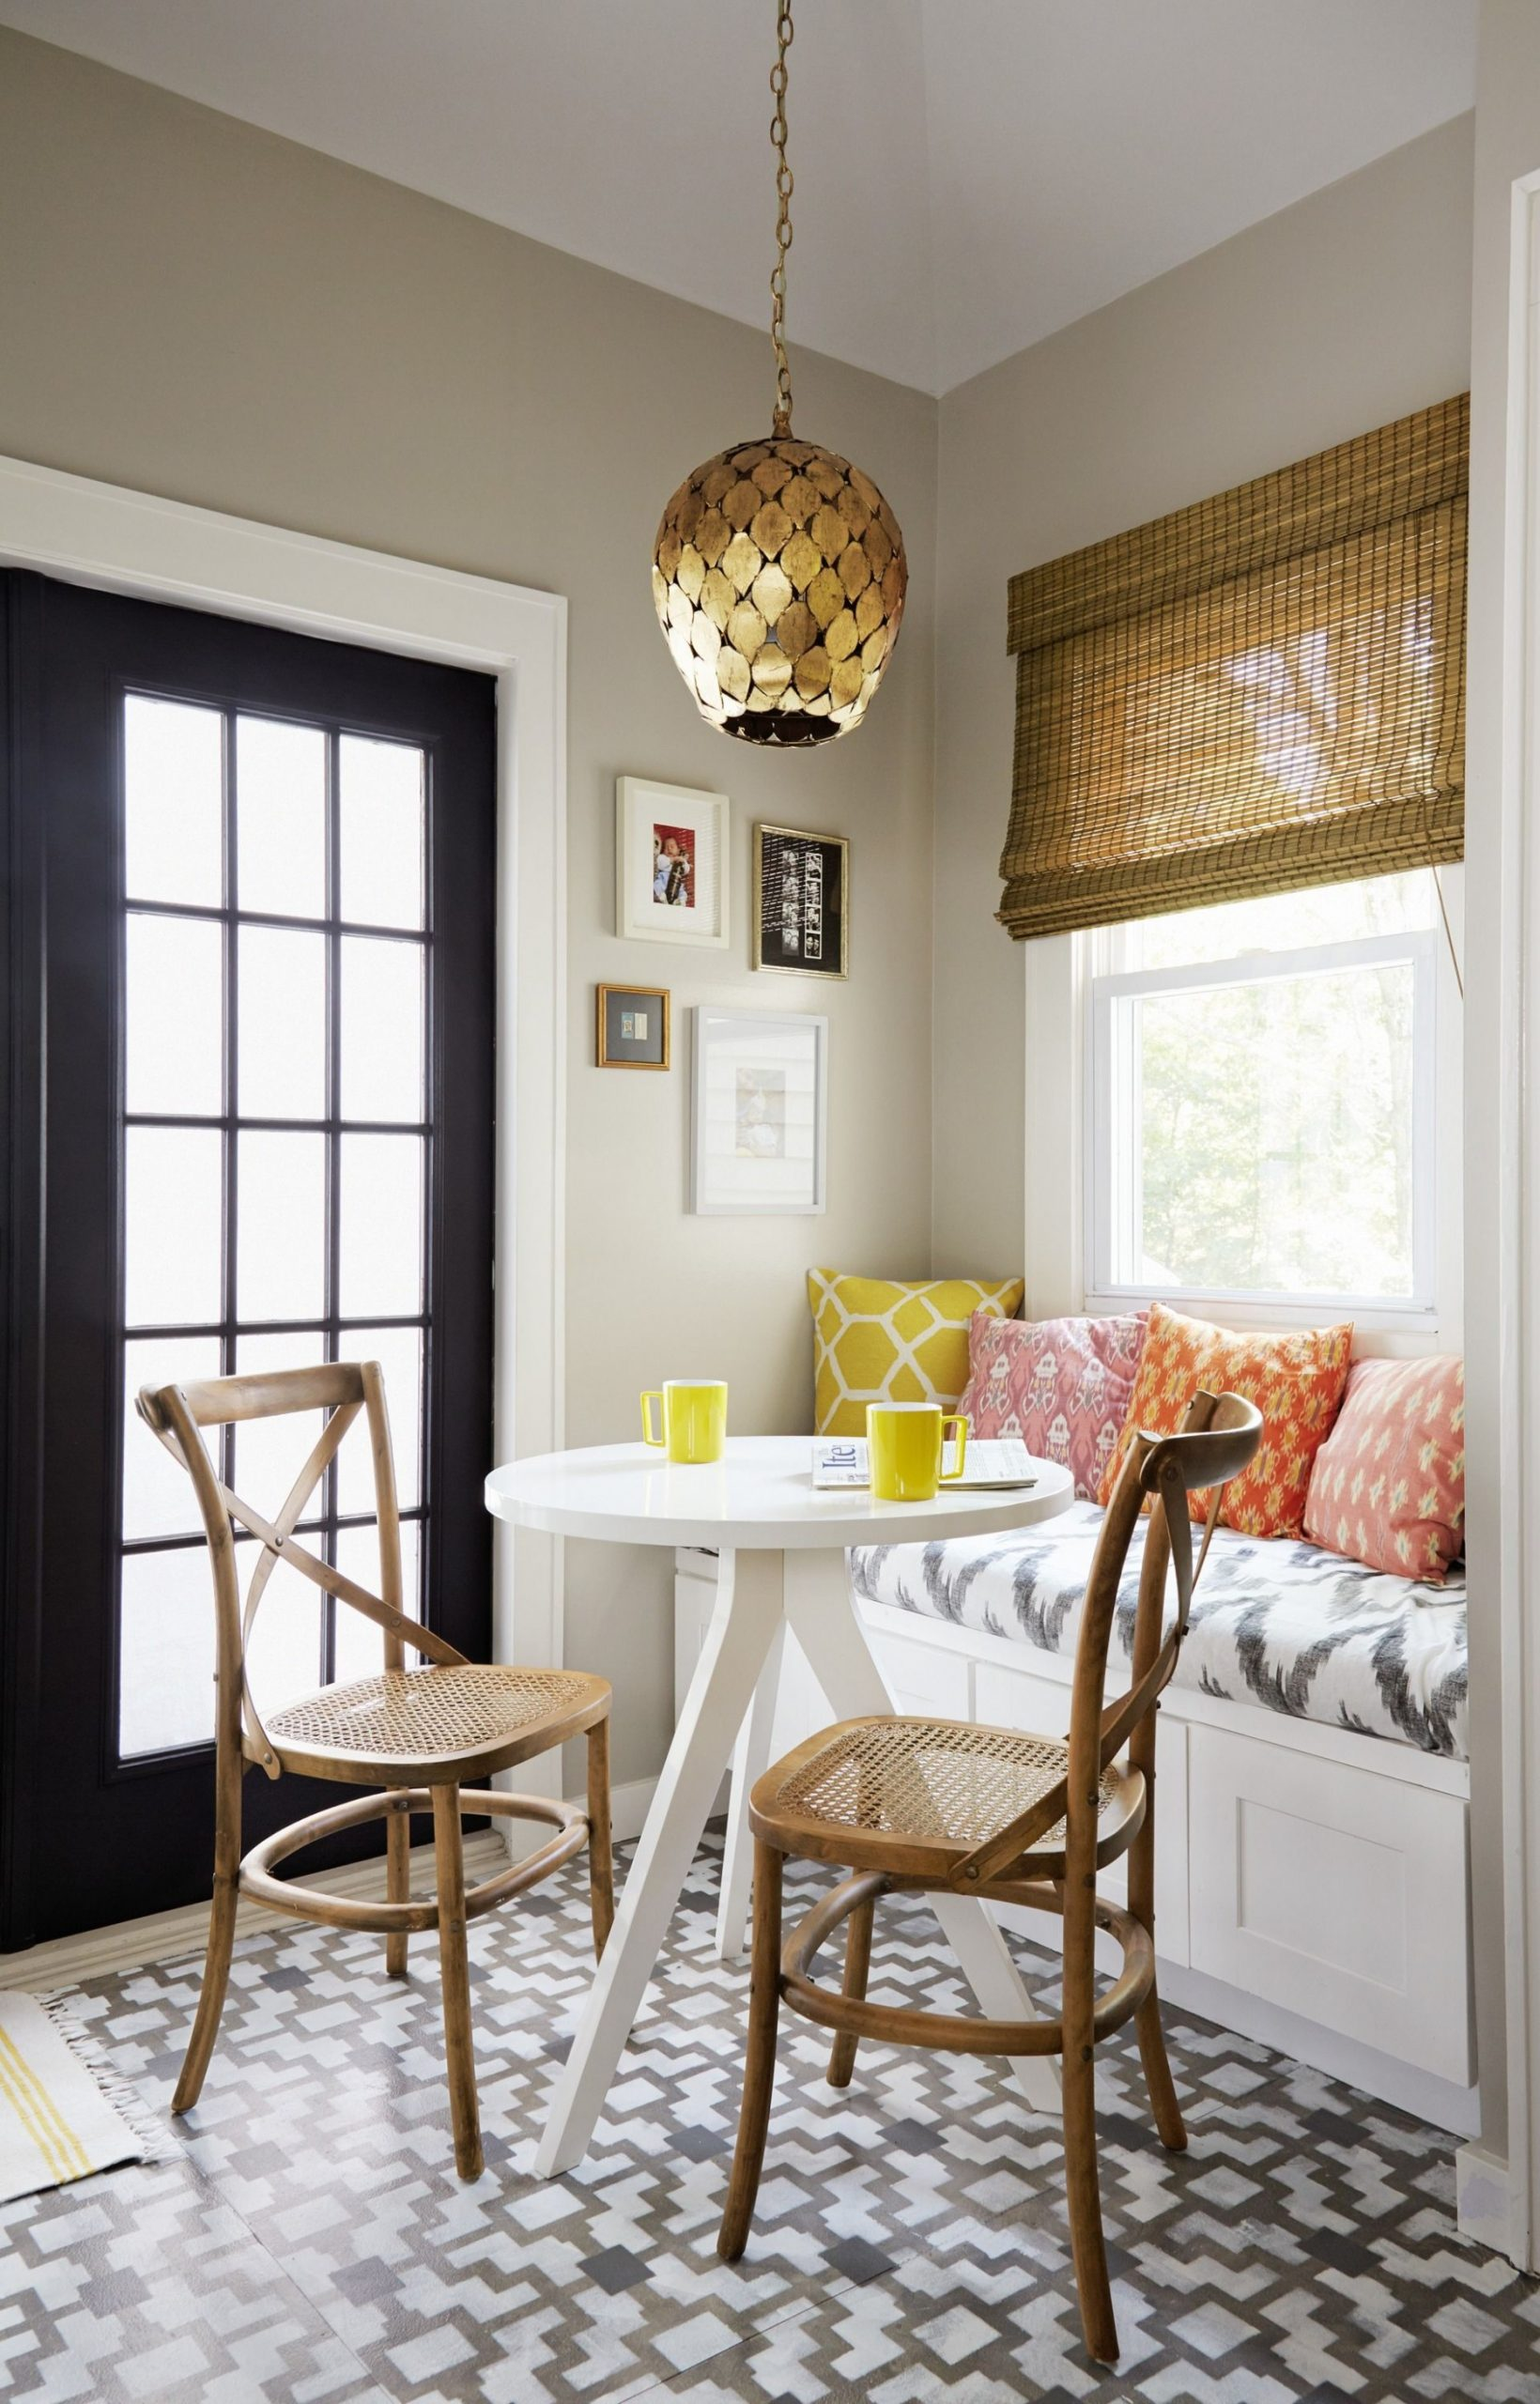 11 Best Dining Room Decorating Ideas - Pictures of Dining Room Decor - Very Dining Room Ideas